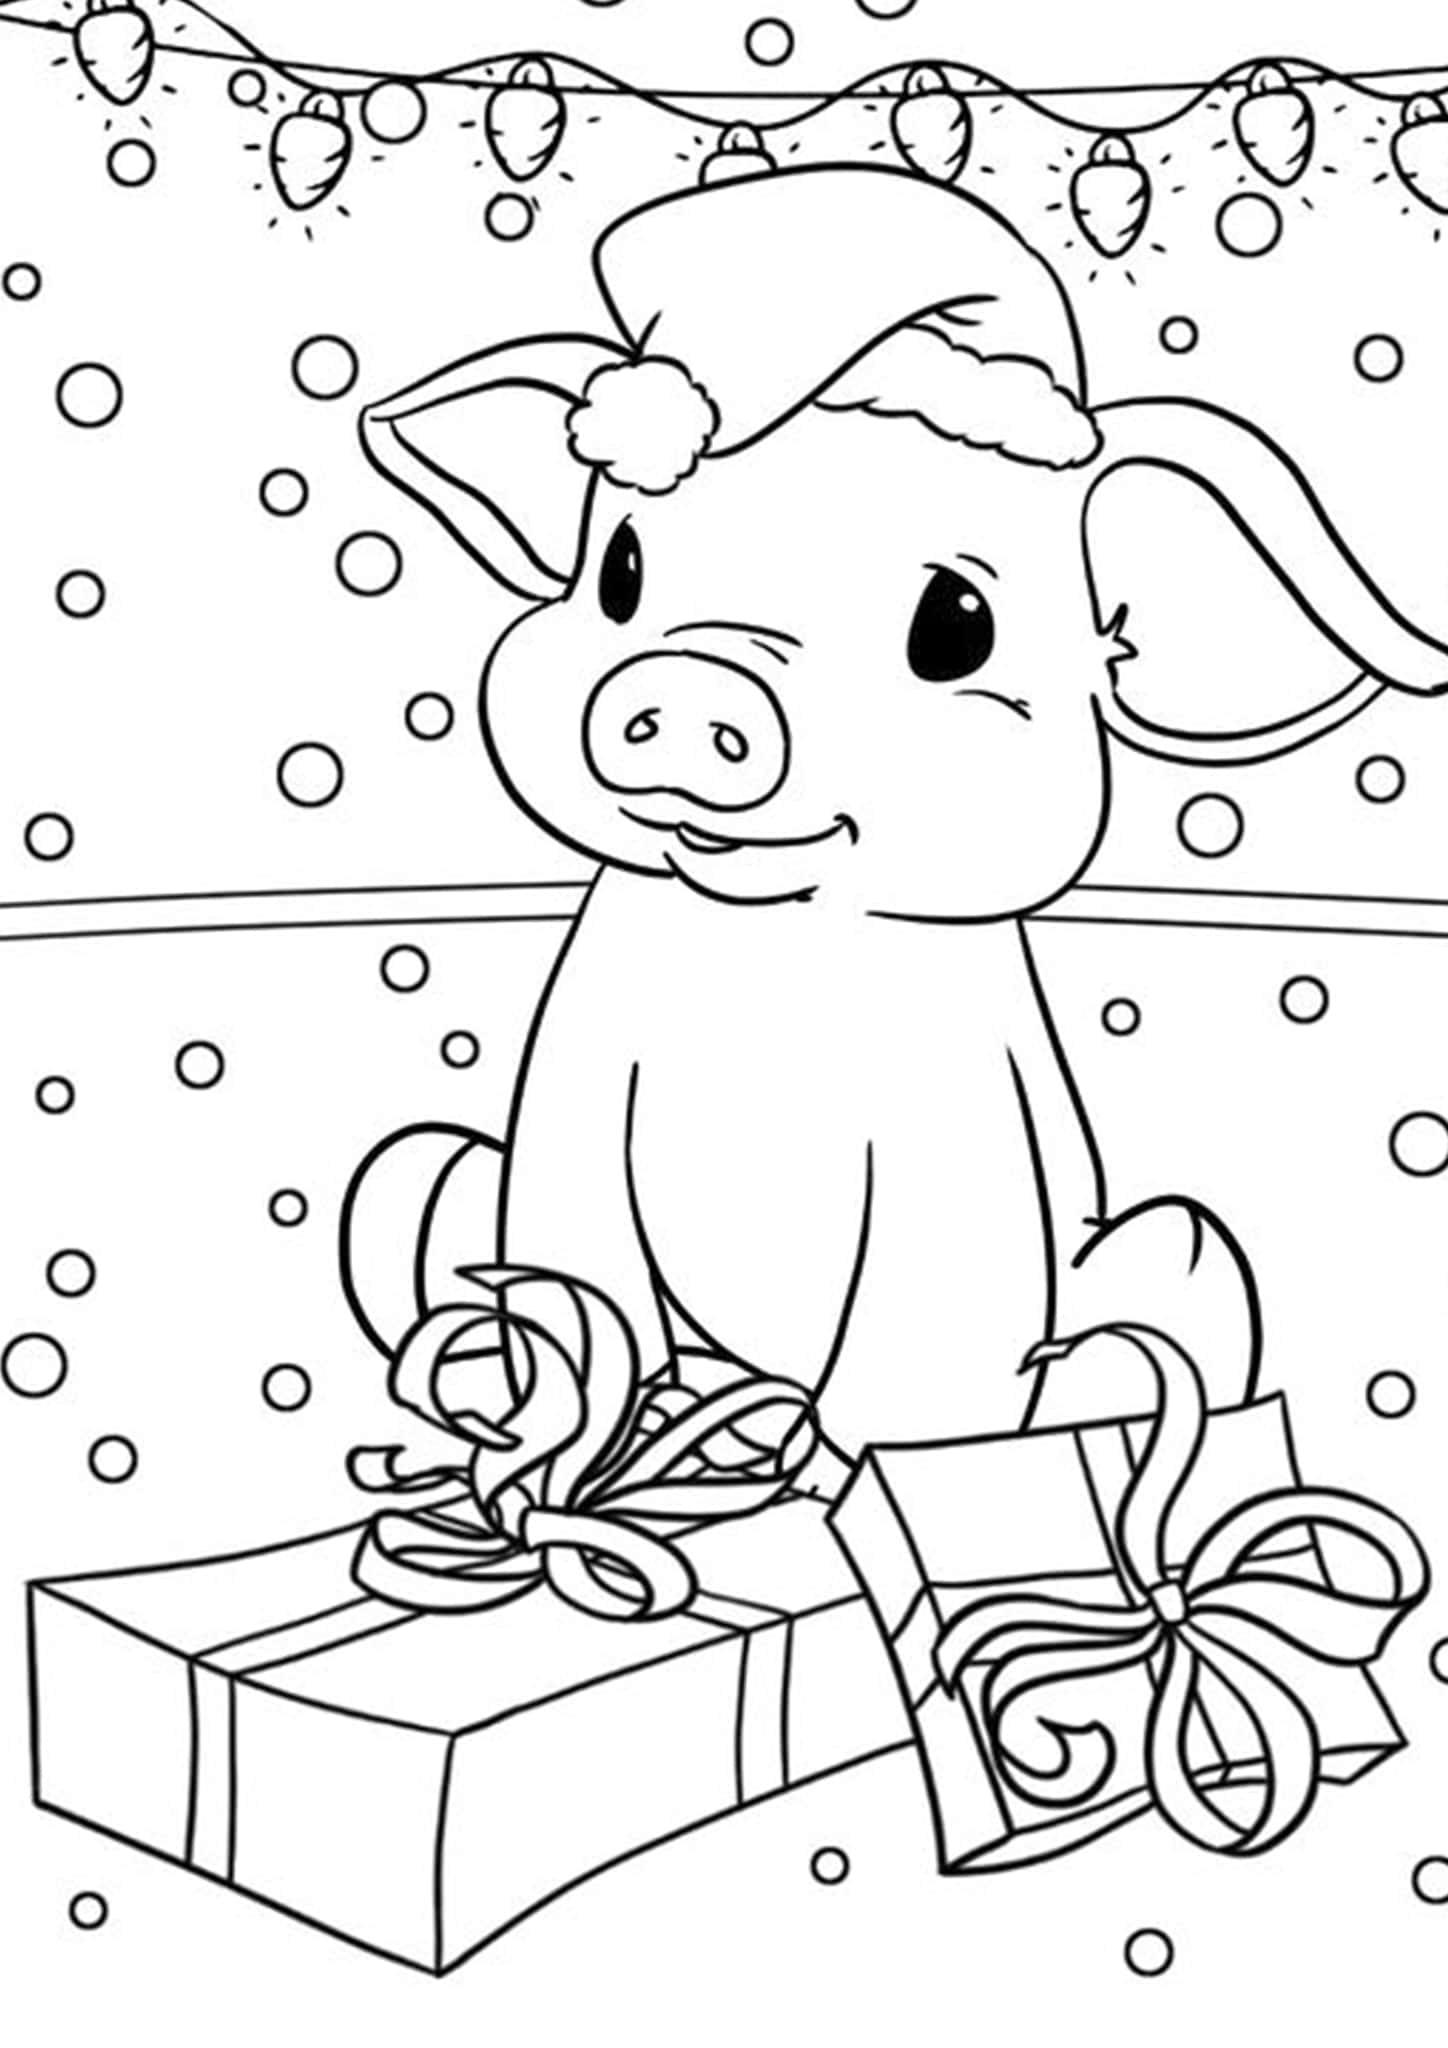 color pages to print free printable cinderella activity sheets and coloring print to color pages